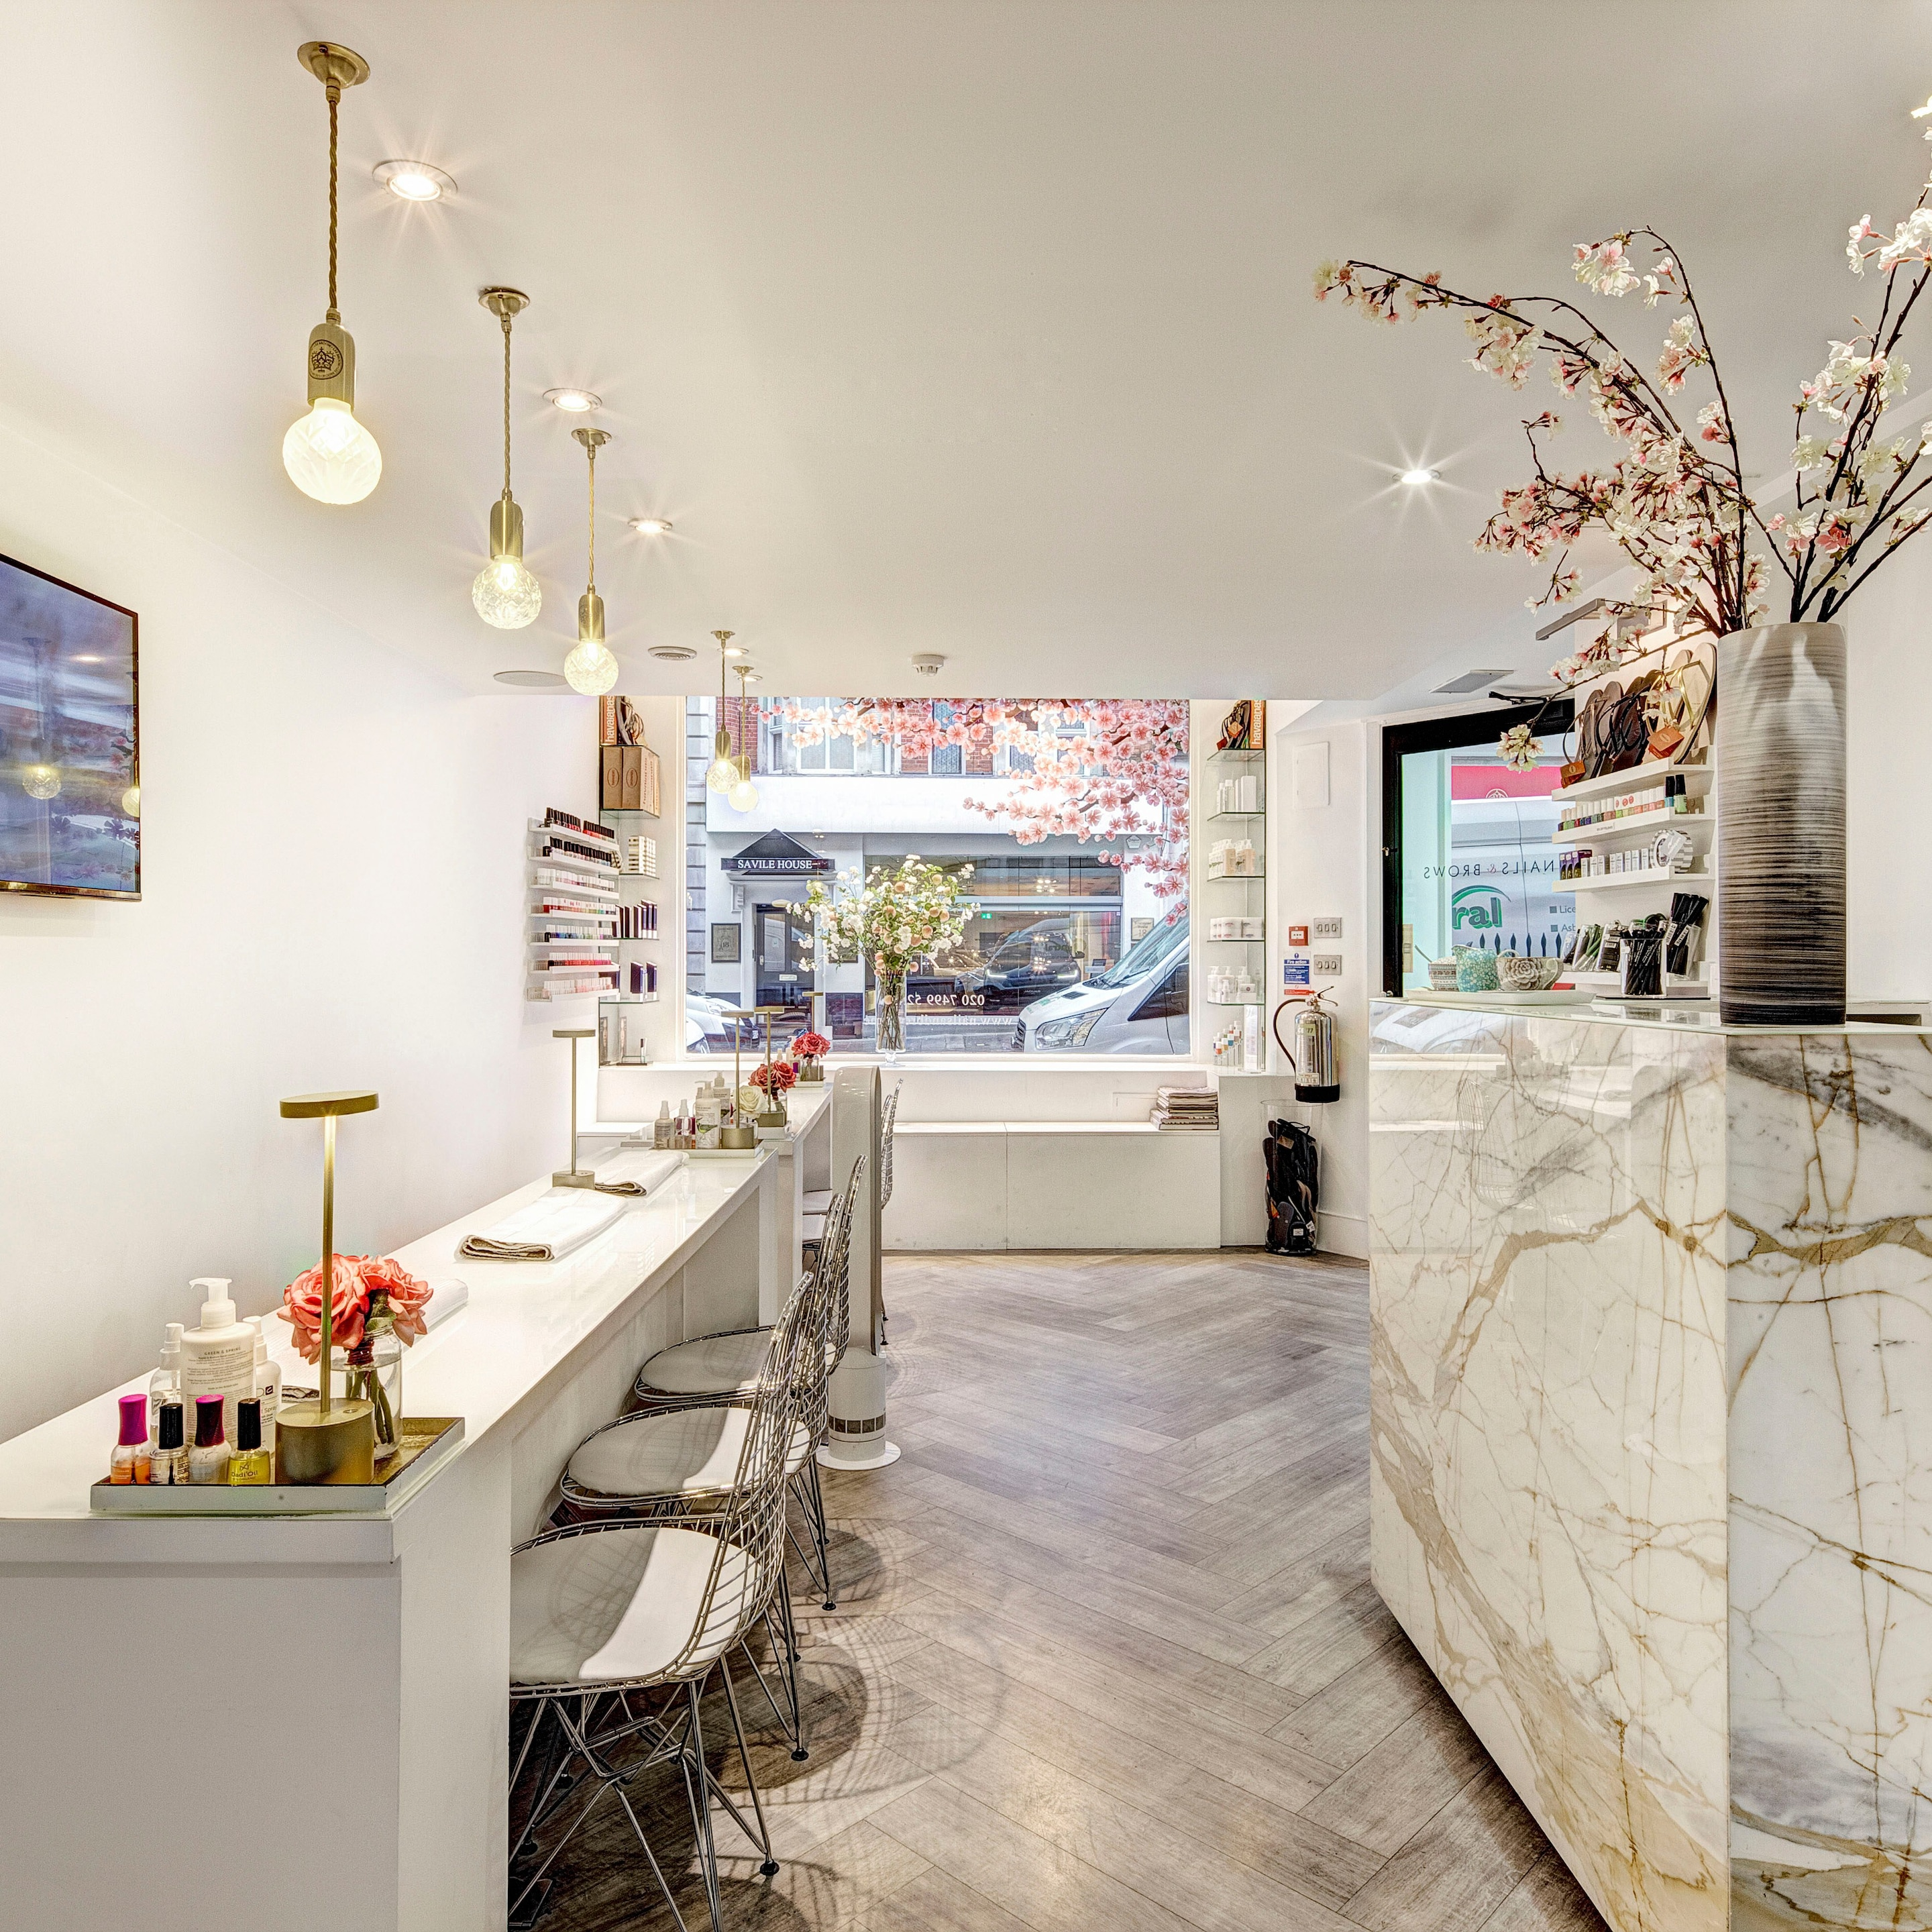 Where To Go For The Best Manicure In London